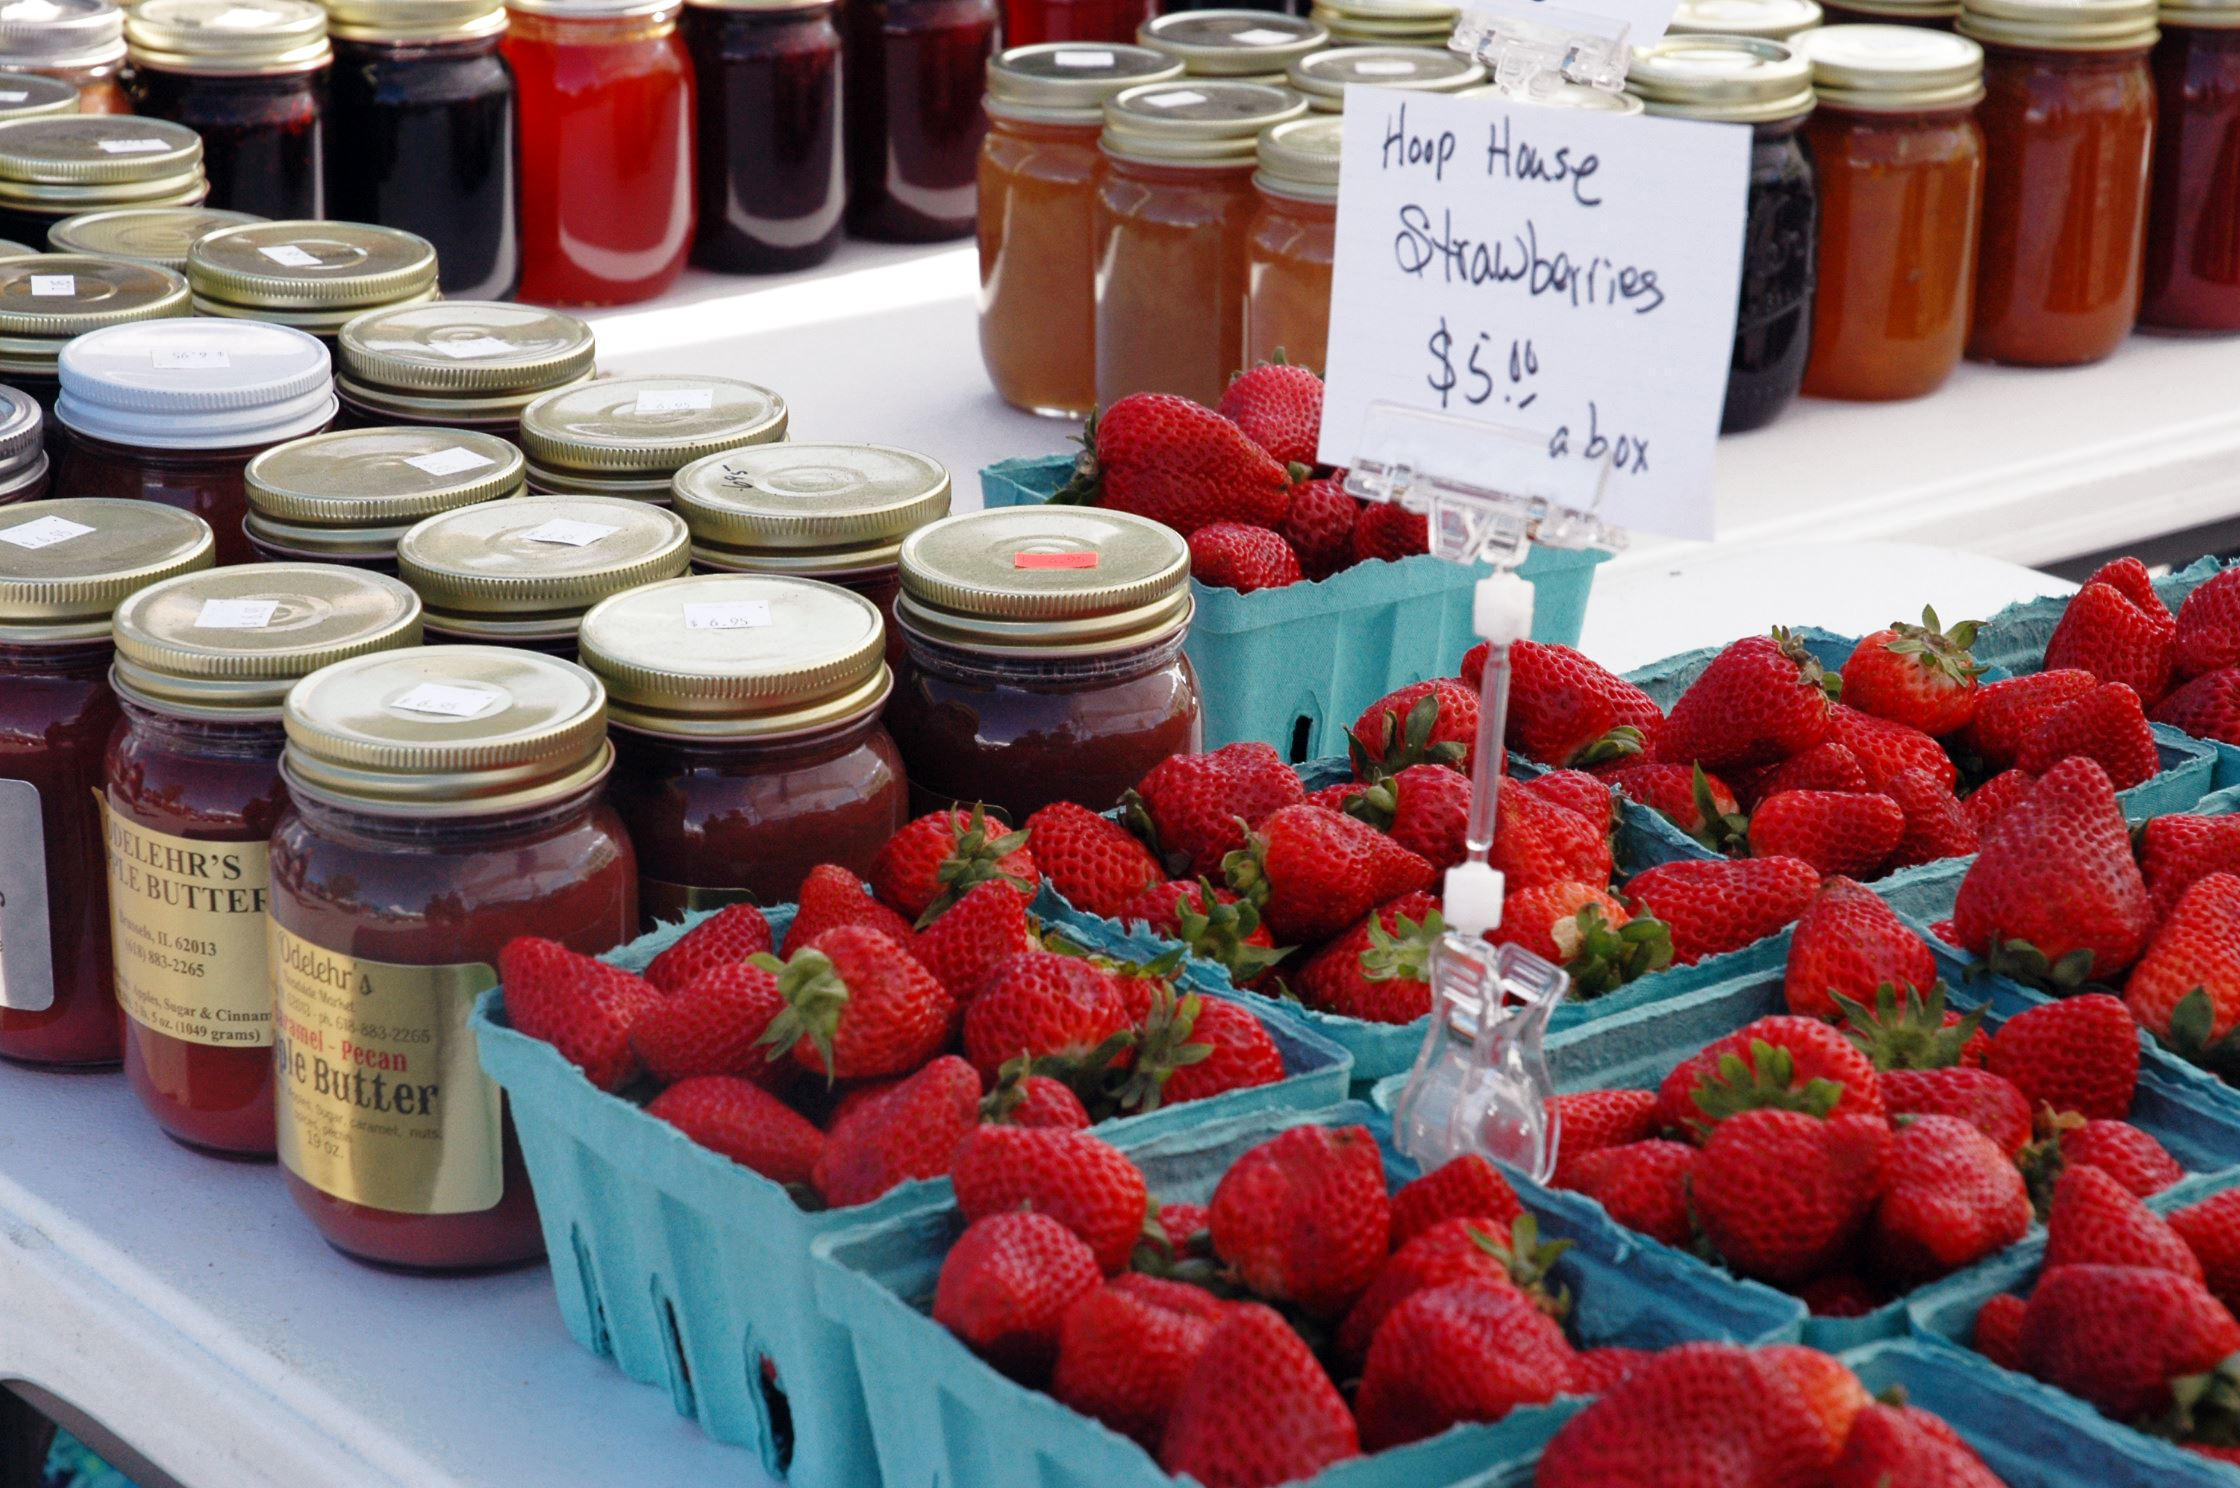 Strawberries and jam for sale